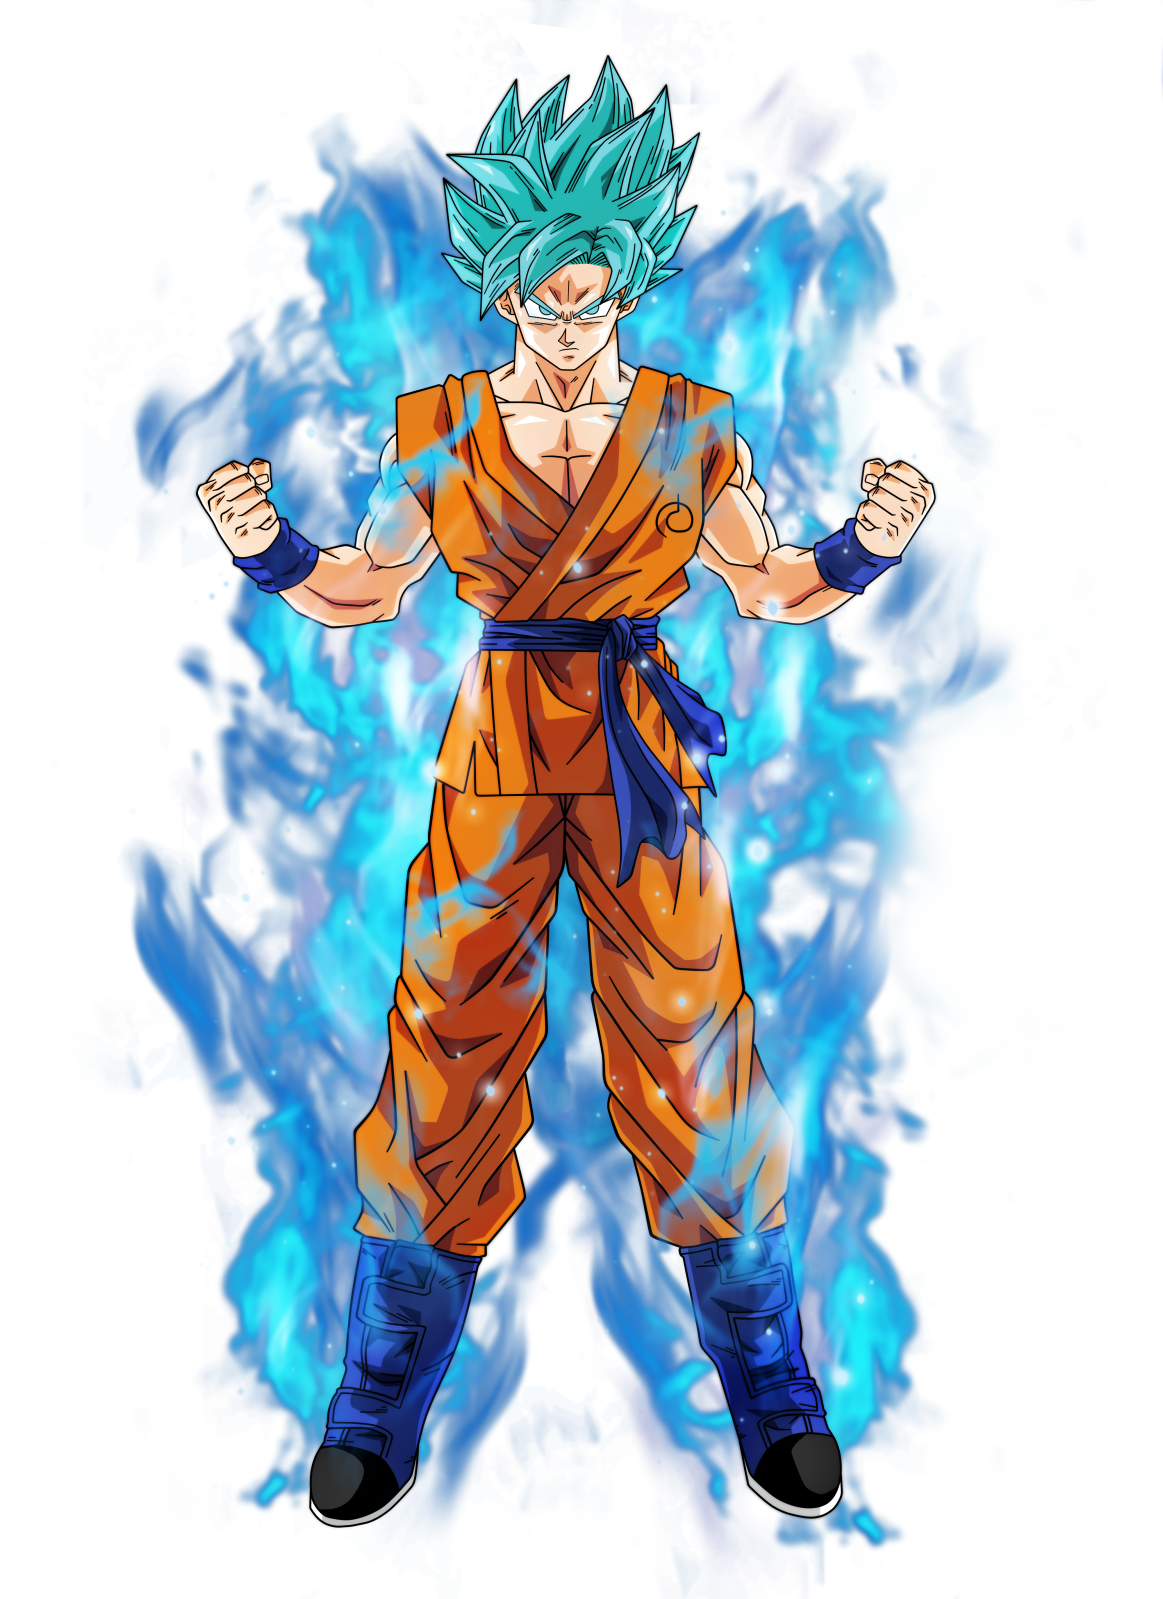 Goku png hd. Bardocksonic fotos pinterest dragon